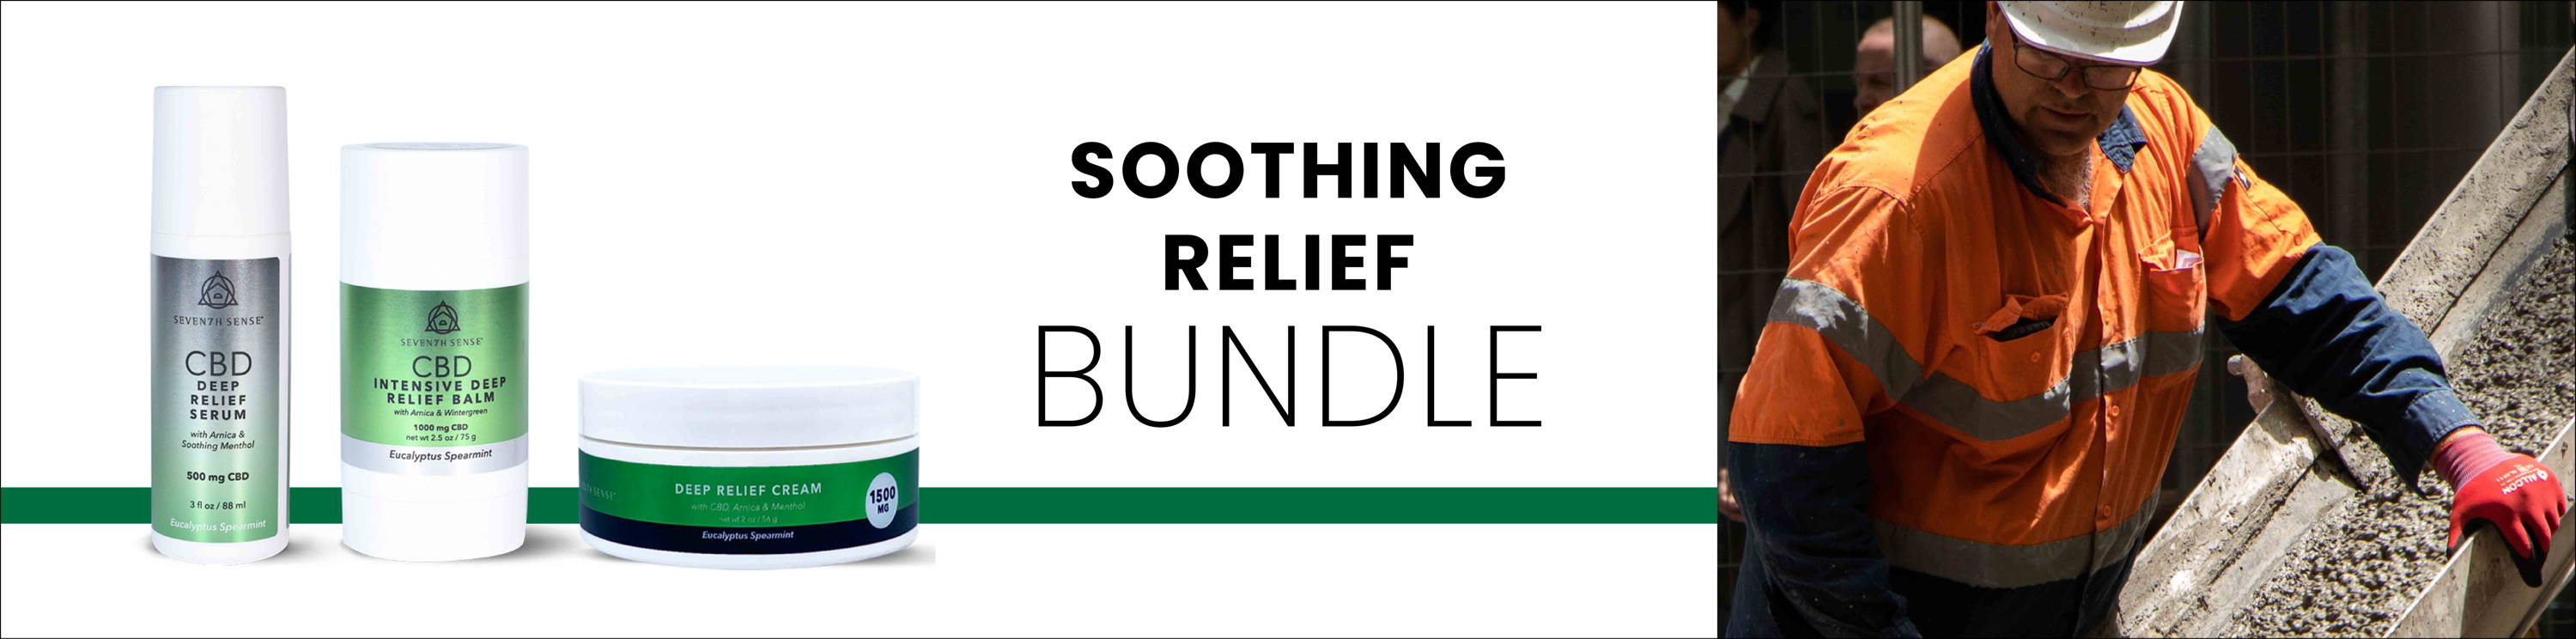 Soothing Relief Bundle